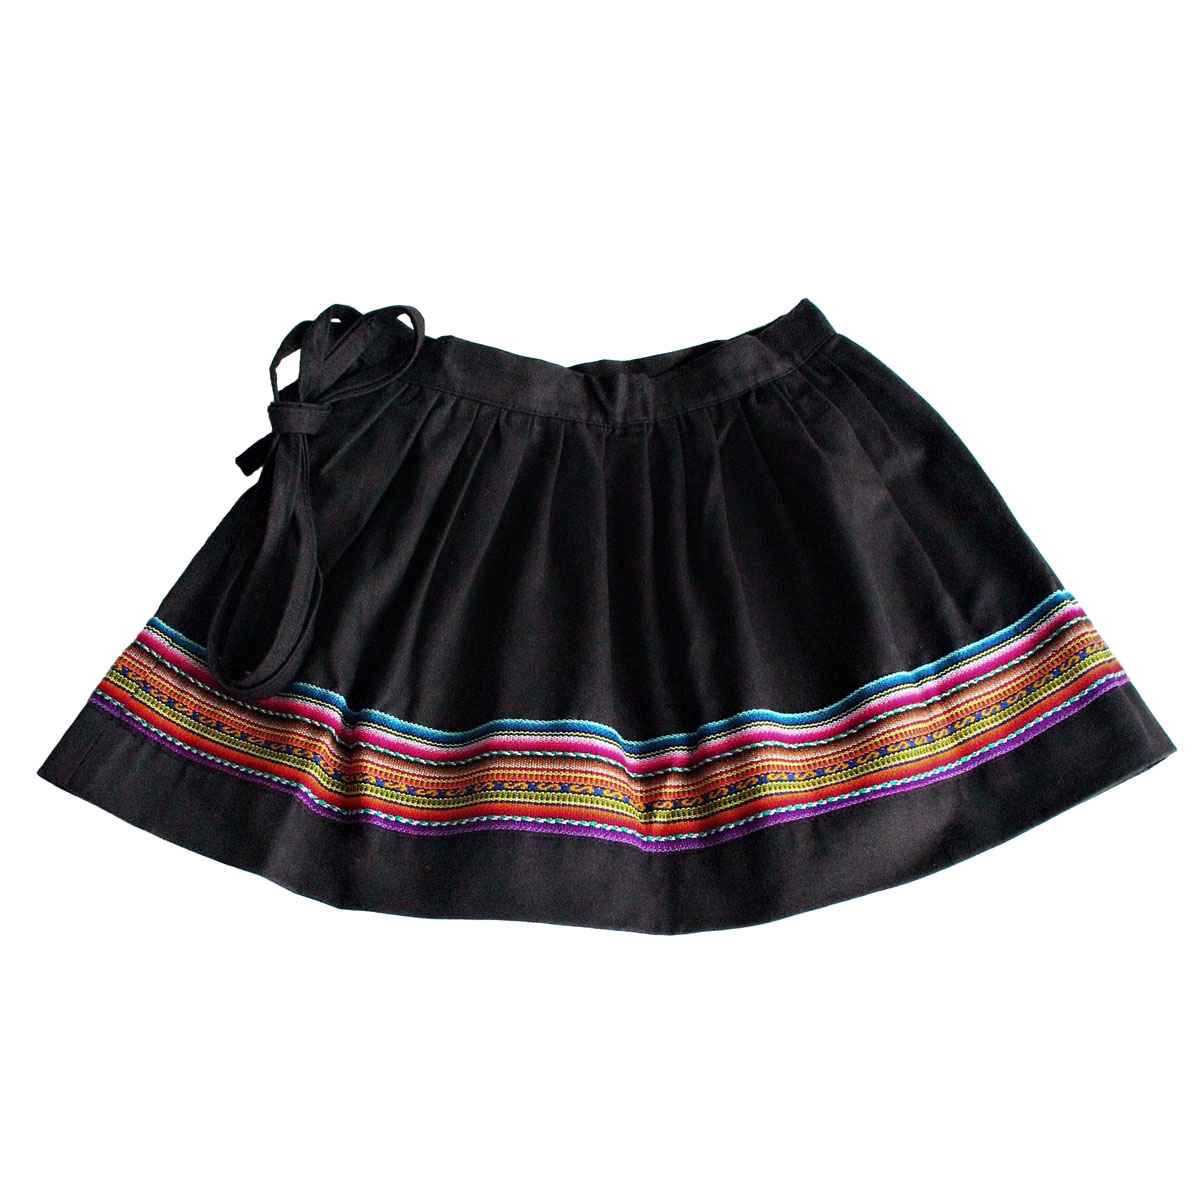 Inka-Products-Mini-Jupe Fille CHOLITA-Noir Motif Ethnique Kurmi